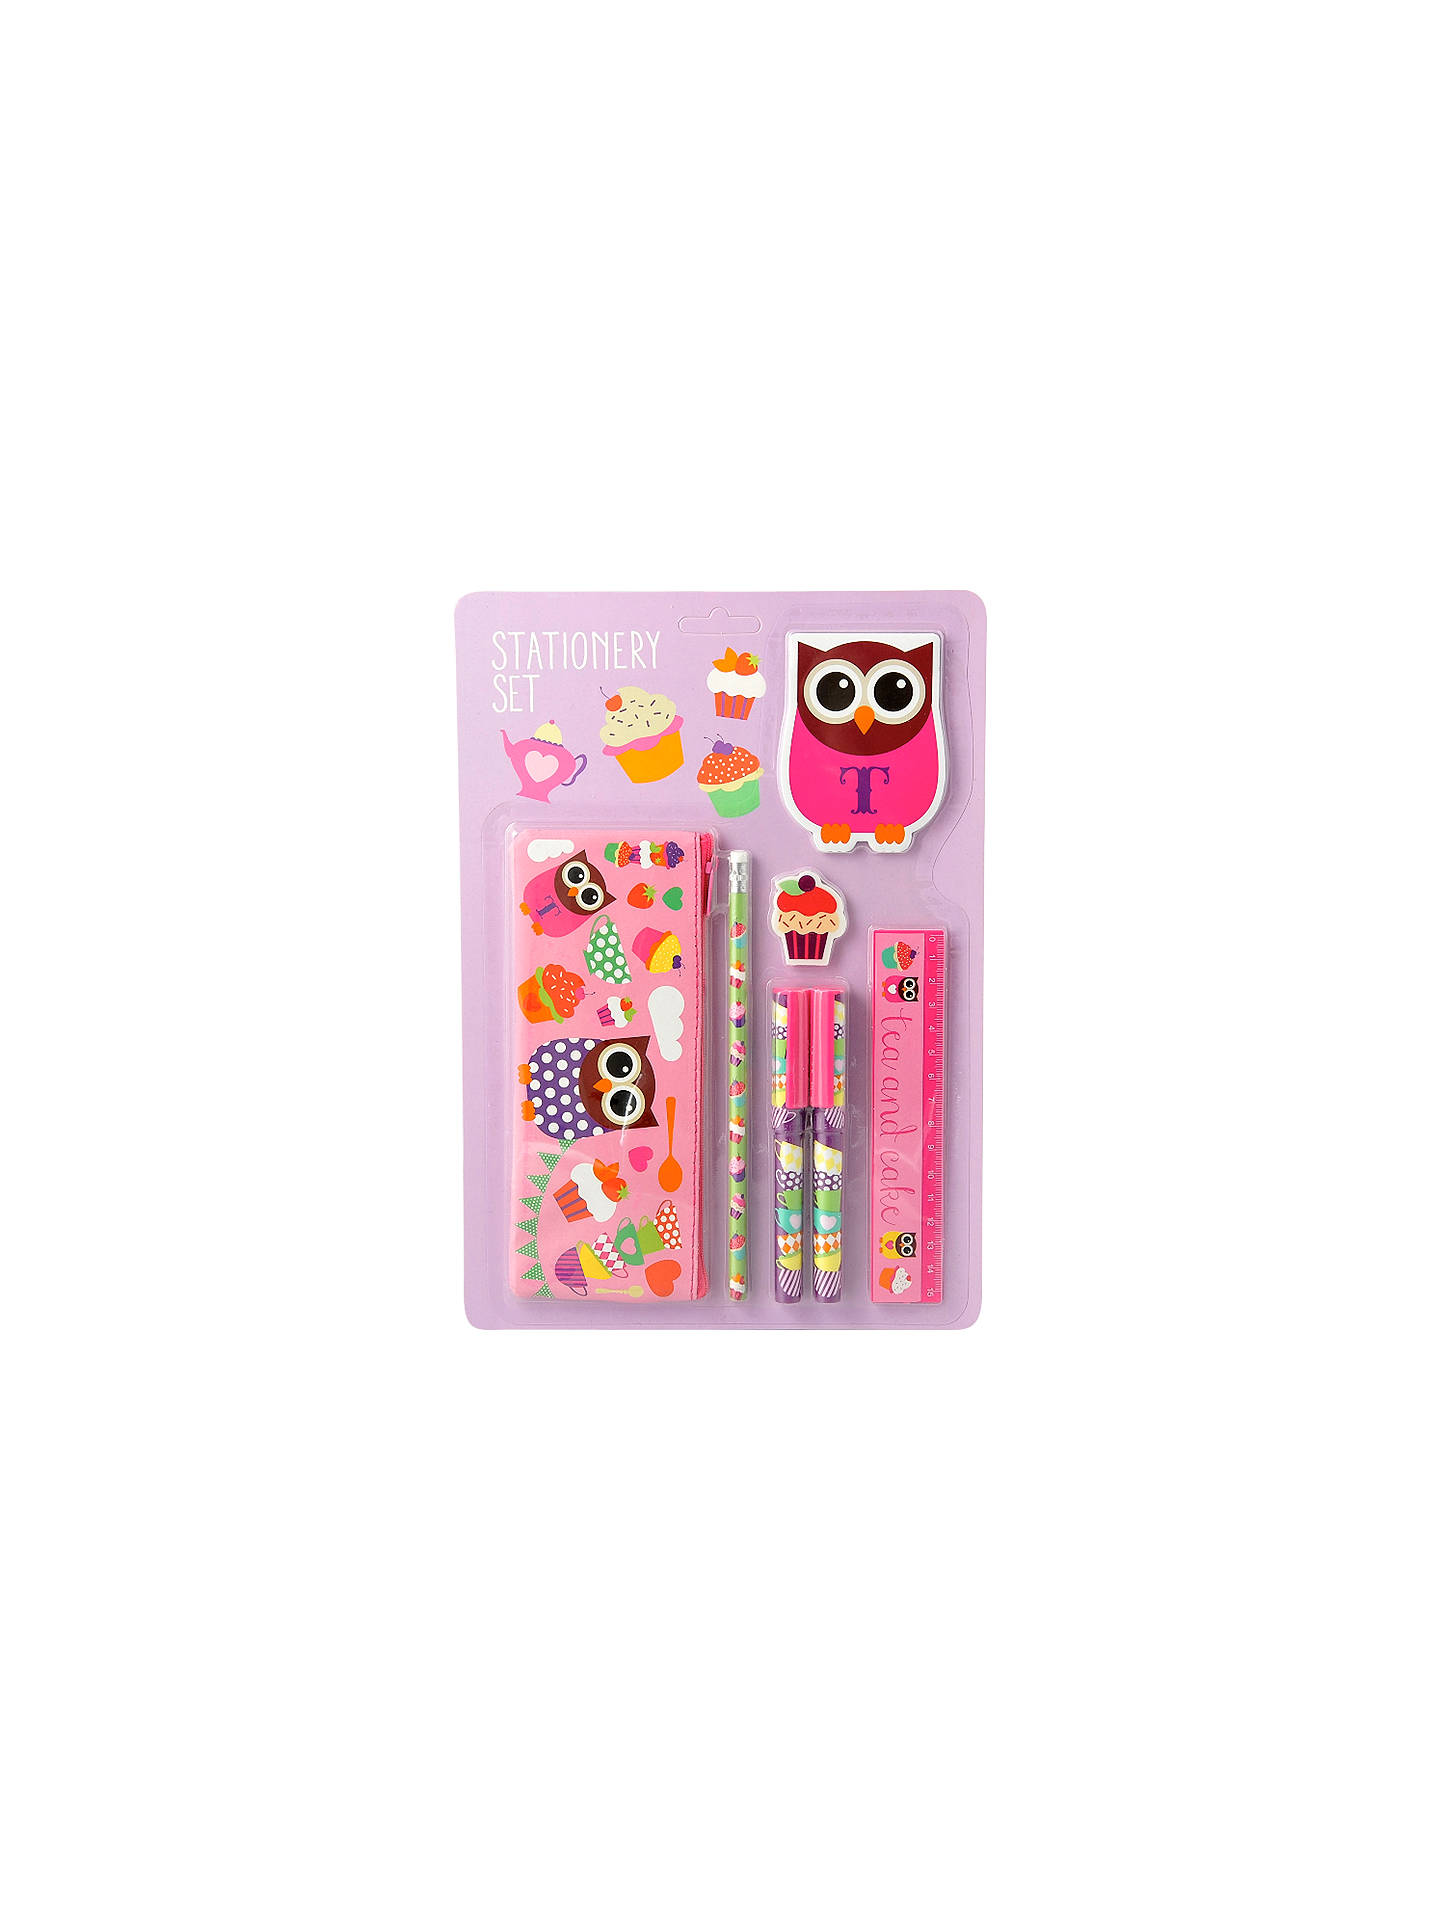 fourth wall hoot tea party stationery set at john lewis partners